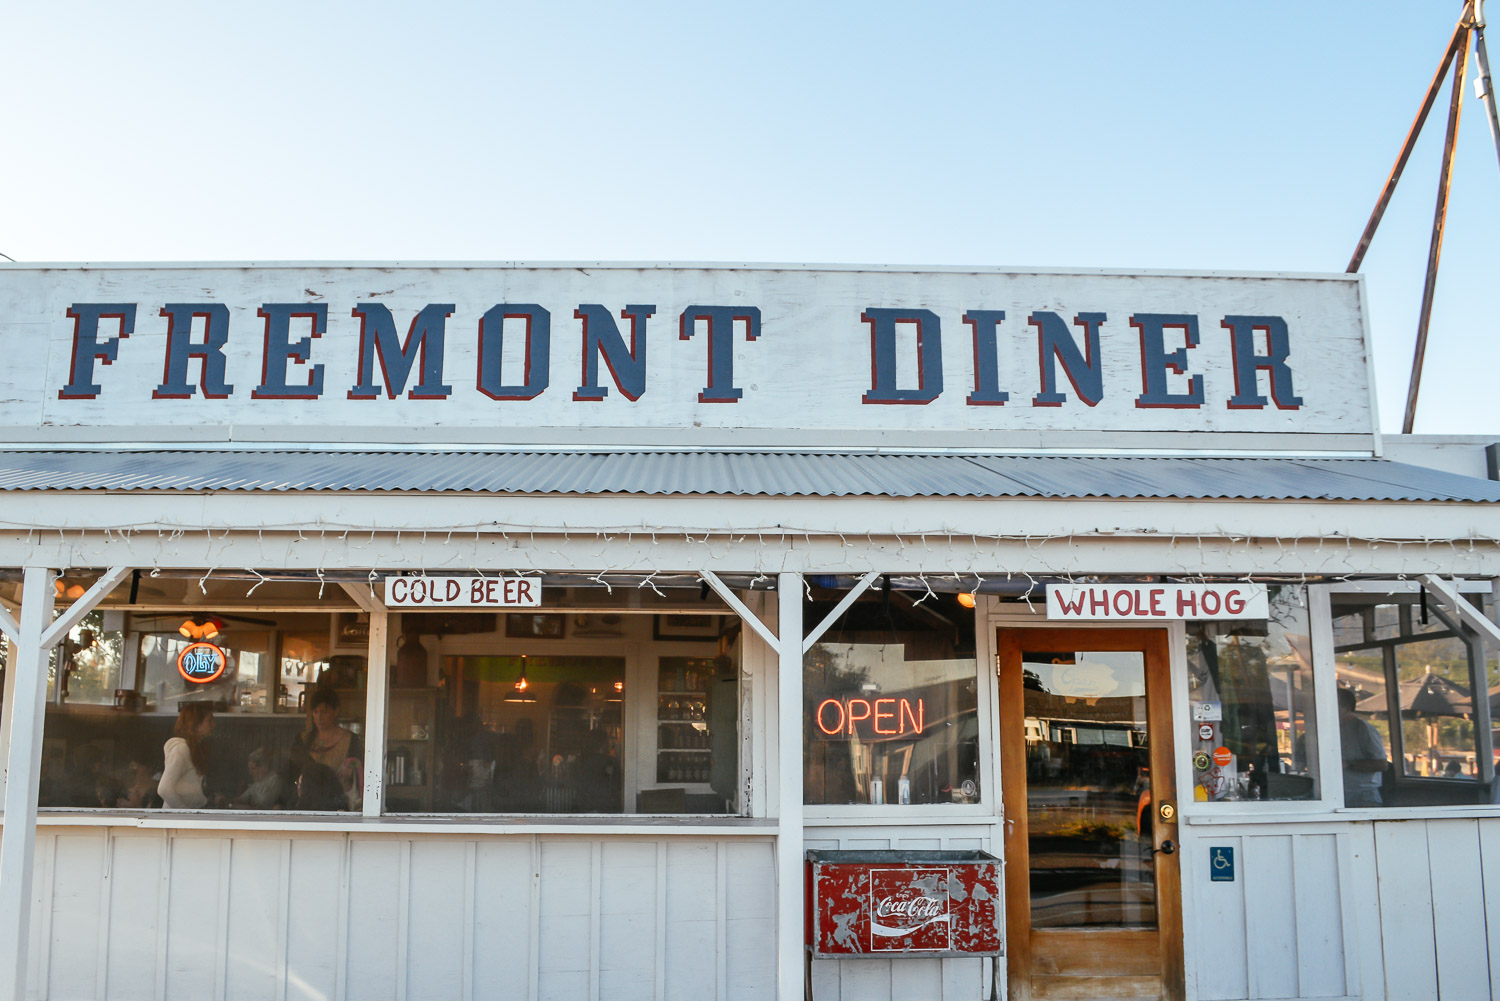 The fremont diner sonoma california weekend magazine for Weekend getaway los angeles area